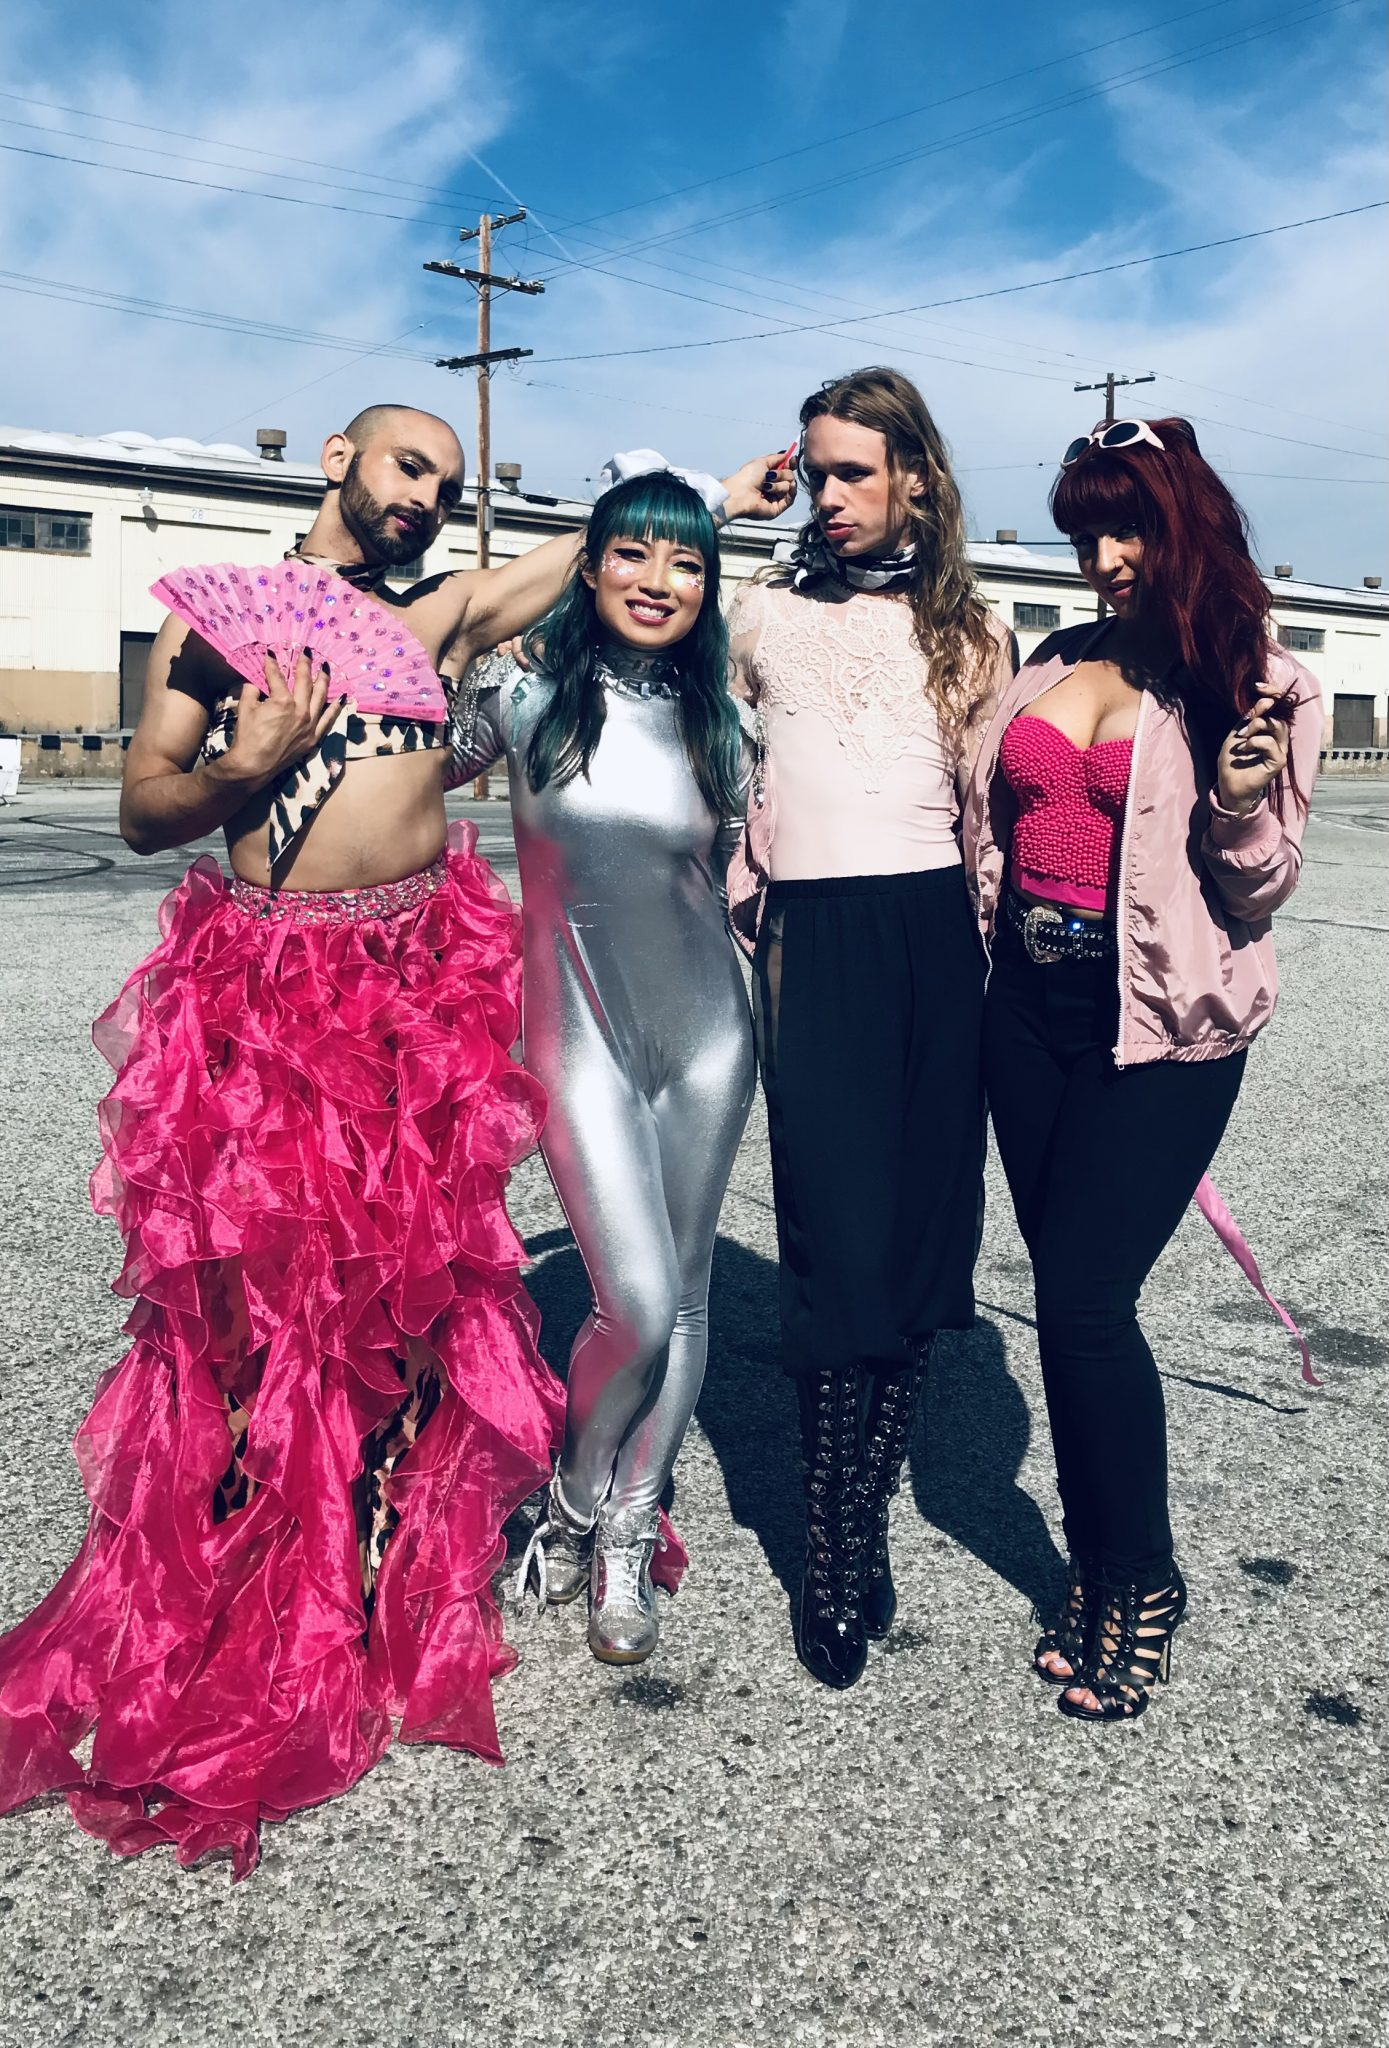 Colour behind the scenes photograph from, the Another Life music video. It features Polartropica with other people. The person to their right is holding a pink fan, and wearing a bright pink feathered skirt, leopard print crop top. They have no hair on their head and a dark haired trimmed beard. Polartropic is to their right wearing an all in one shiny silver bodysuit with their hair in a half up hair do with a bow. They are smiling at the camera. To their right are two other people. One with long brown hair wearing a pale top and dark trousers and tall buckled up boots.. The last one to the right wears a pink bomber jacket, bright pink top, sunglasses, dark trousers and heels. They are in a car park setting with blue sky, gravel flooring and a building behind them.